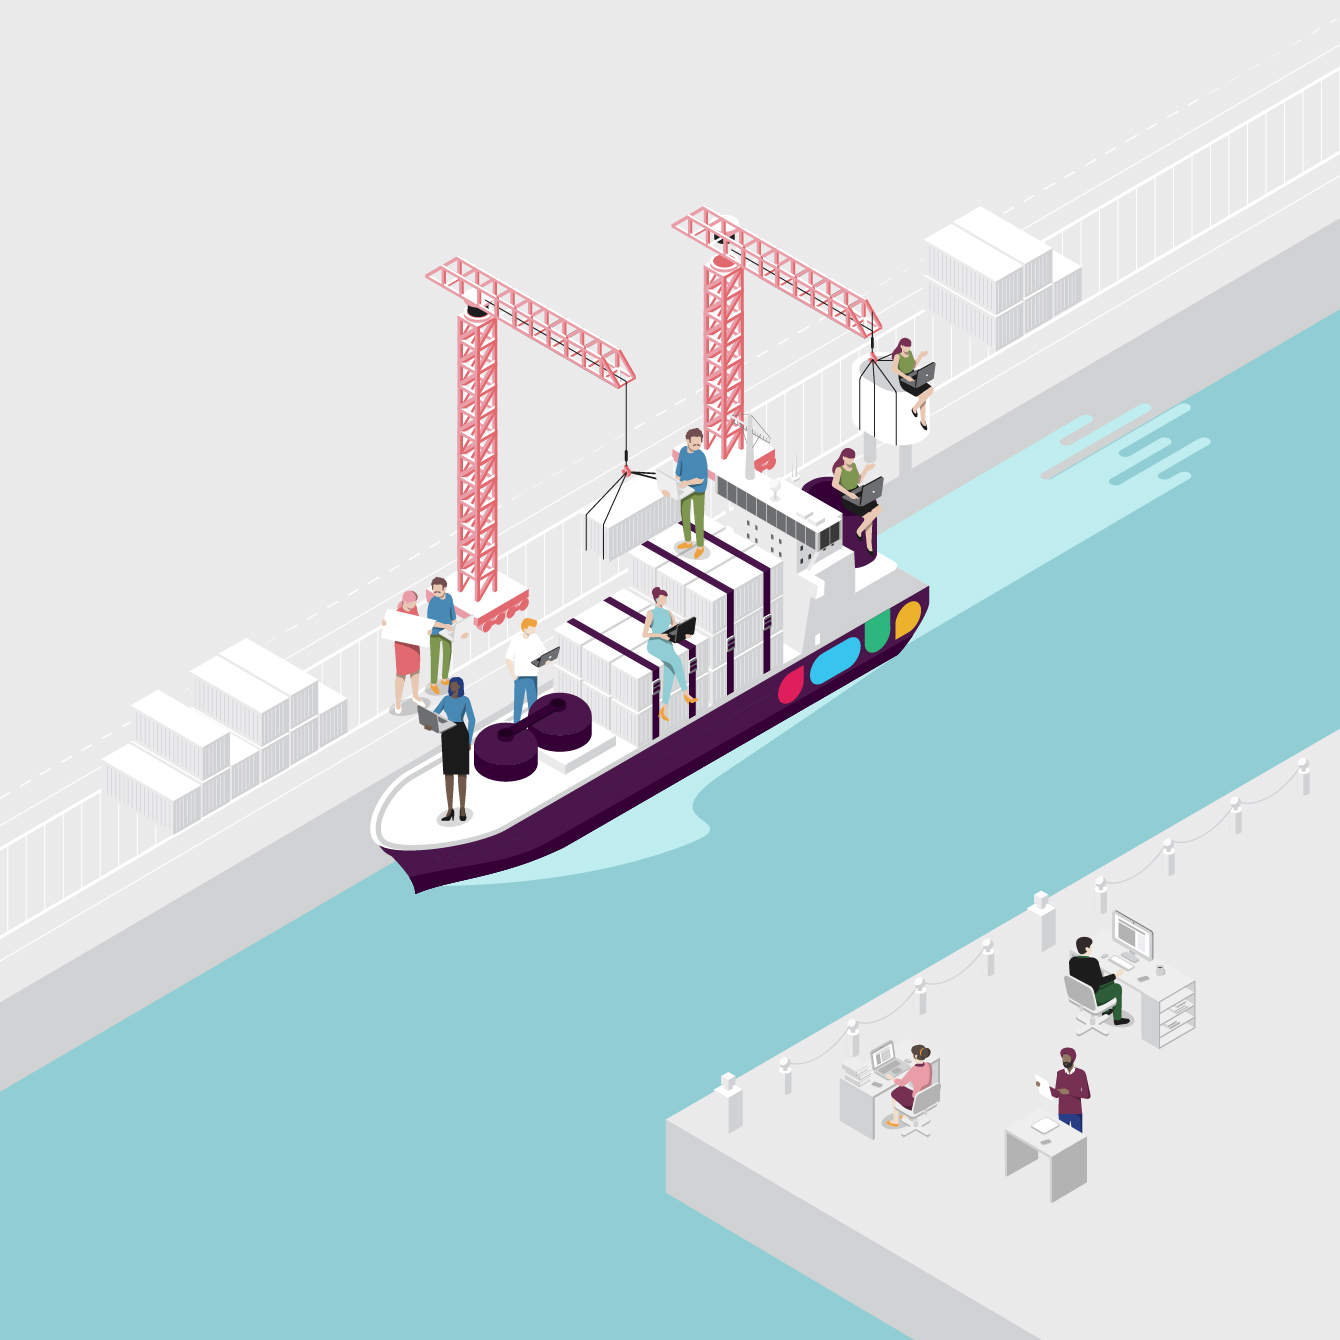 Boat illustration with people working representing Slack and Office 365 collaboration